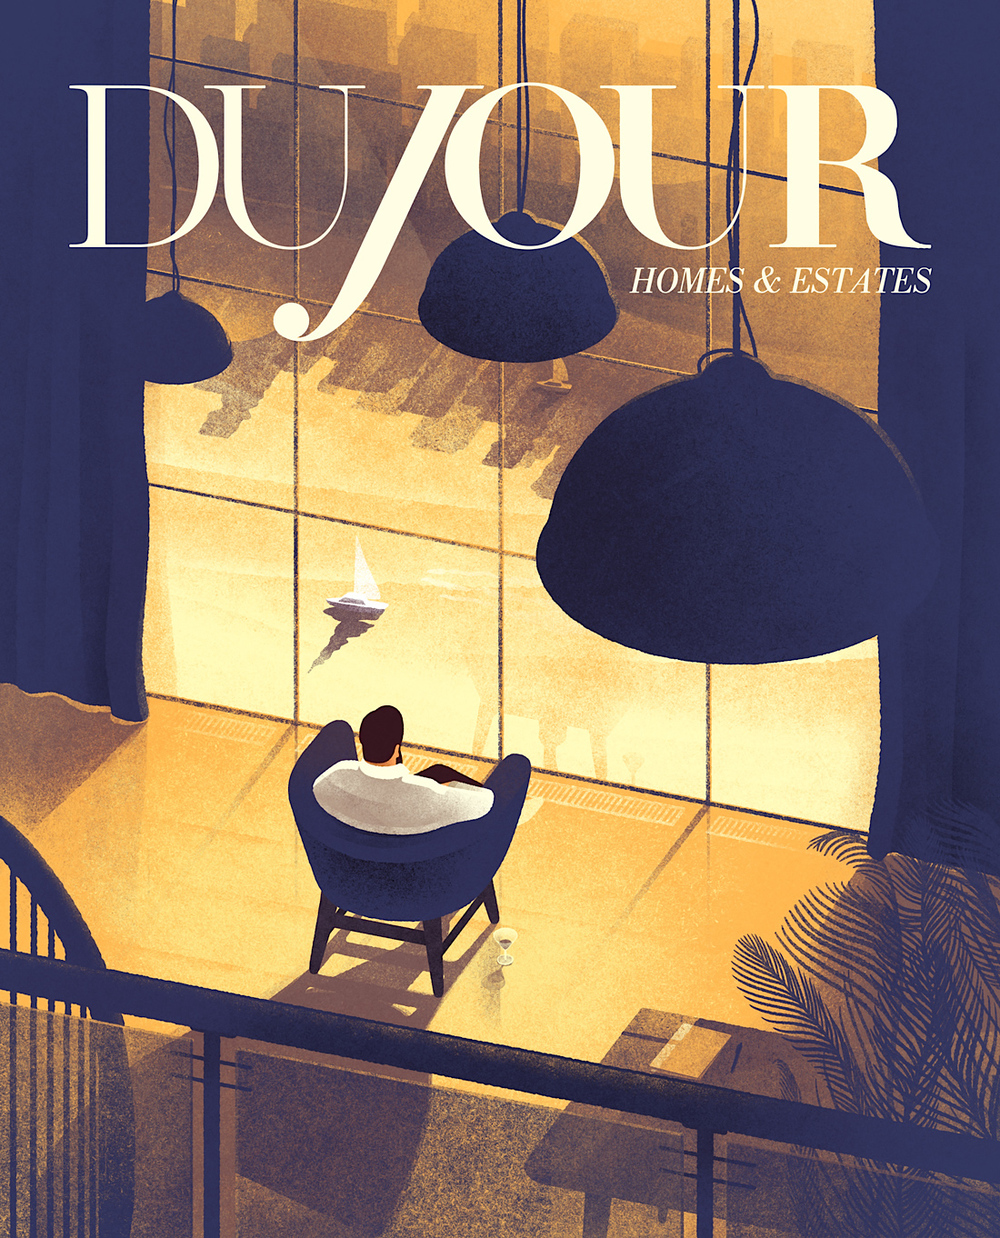 final-dujour-mag-cover-illustration.jpg